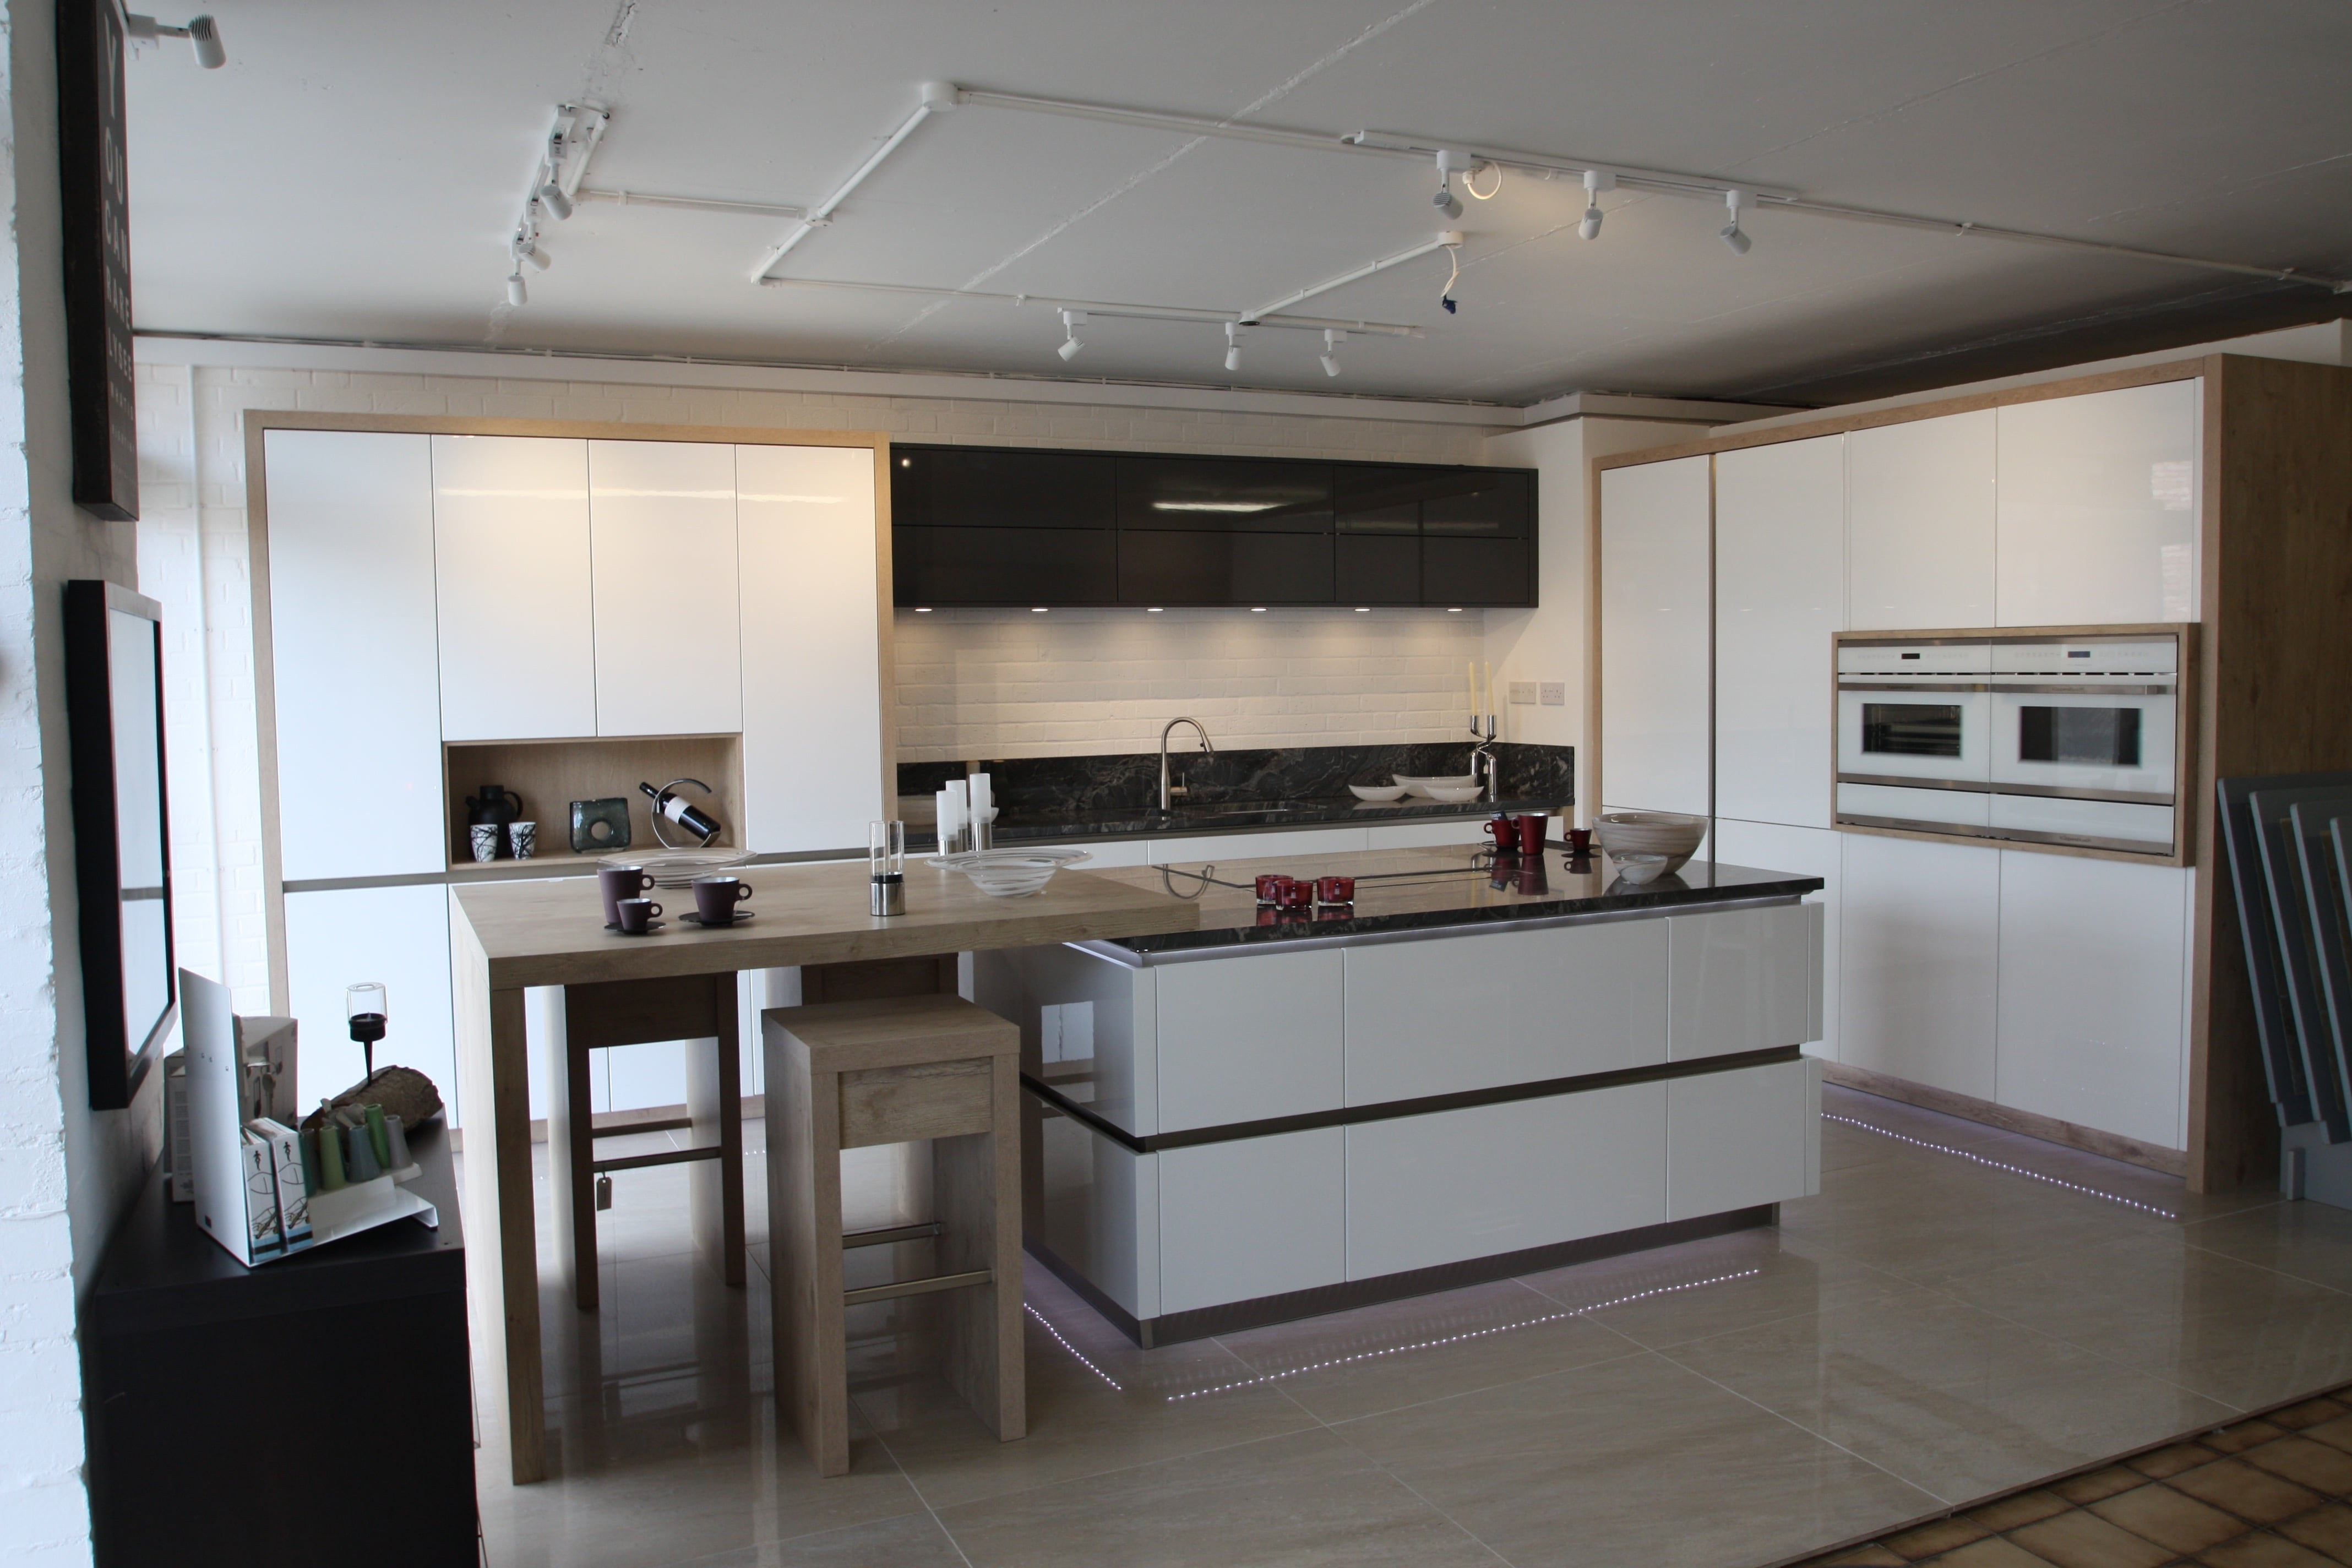 Kitchens Market Harborough 16